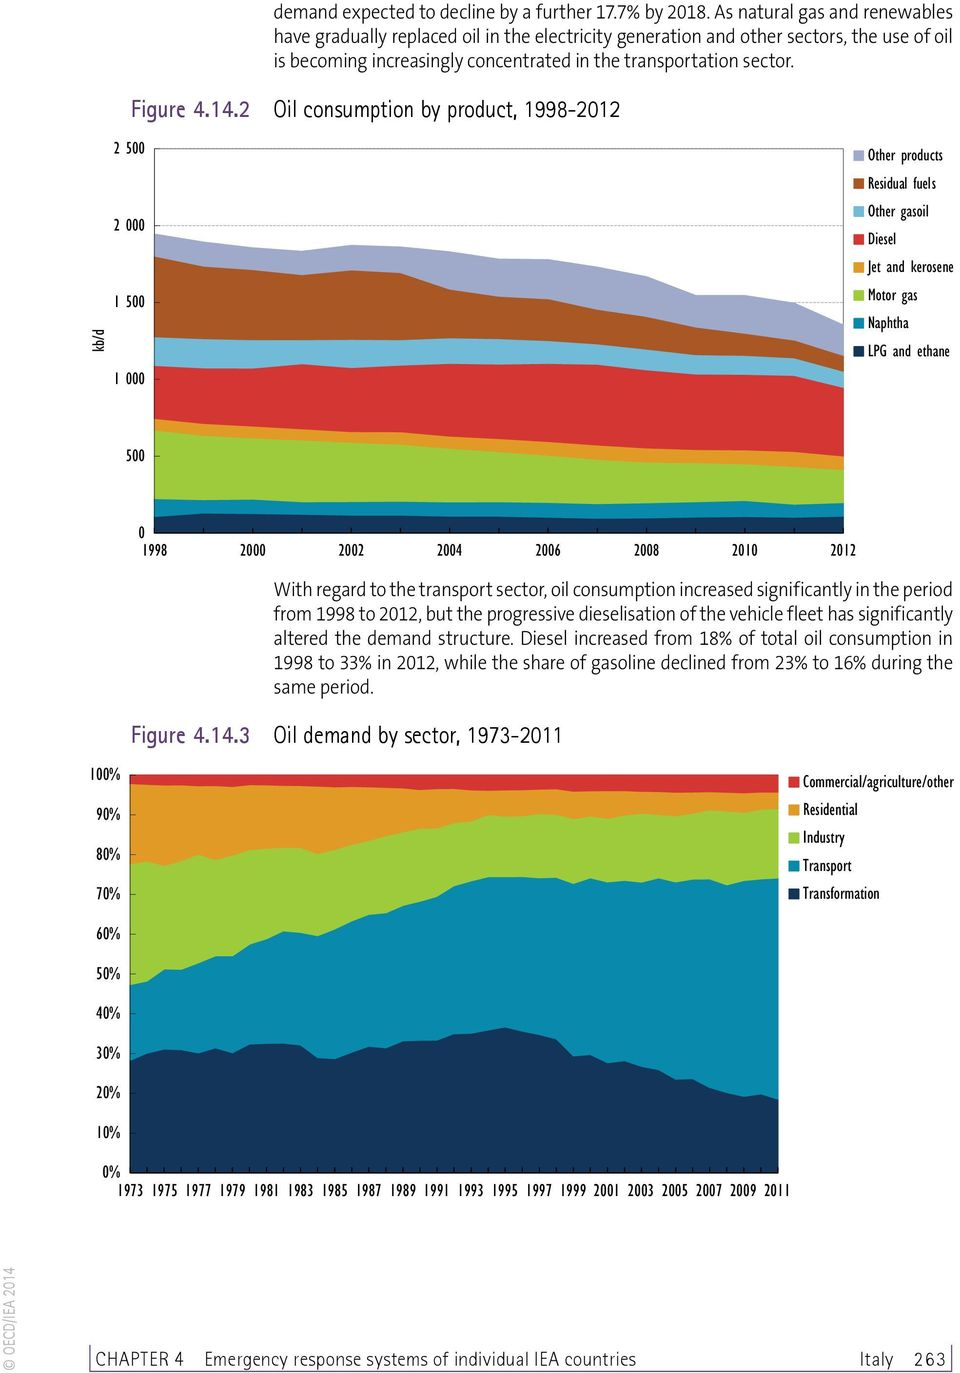 14.2 Oil consumption by product, 1998-2012 kb/d 2 500 2 000 1 500 1 000 Other products Residual fuels Other gasoil Diesel Jet and kerosene Motor gas Naphtha LPG and ethane 500 0 1998 2000 2002 2004